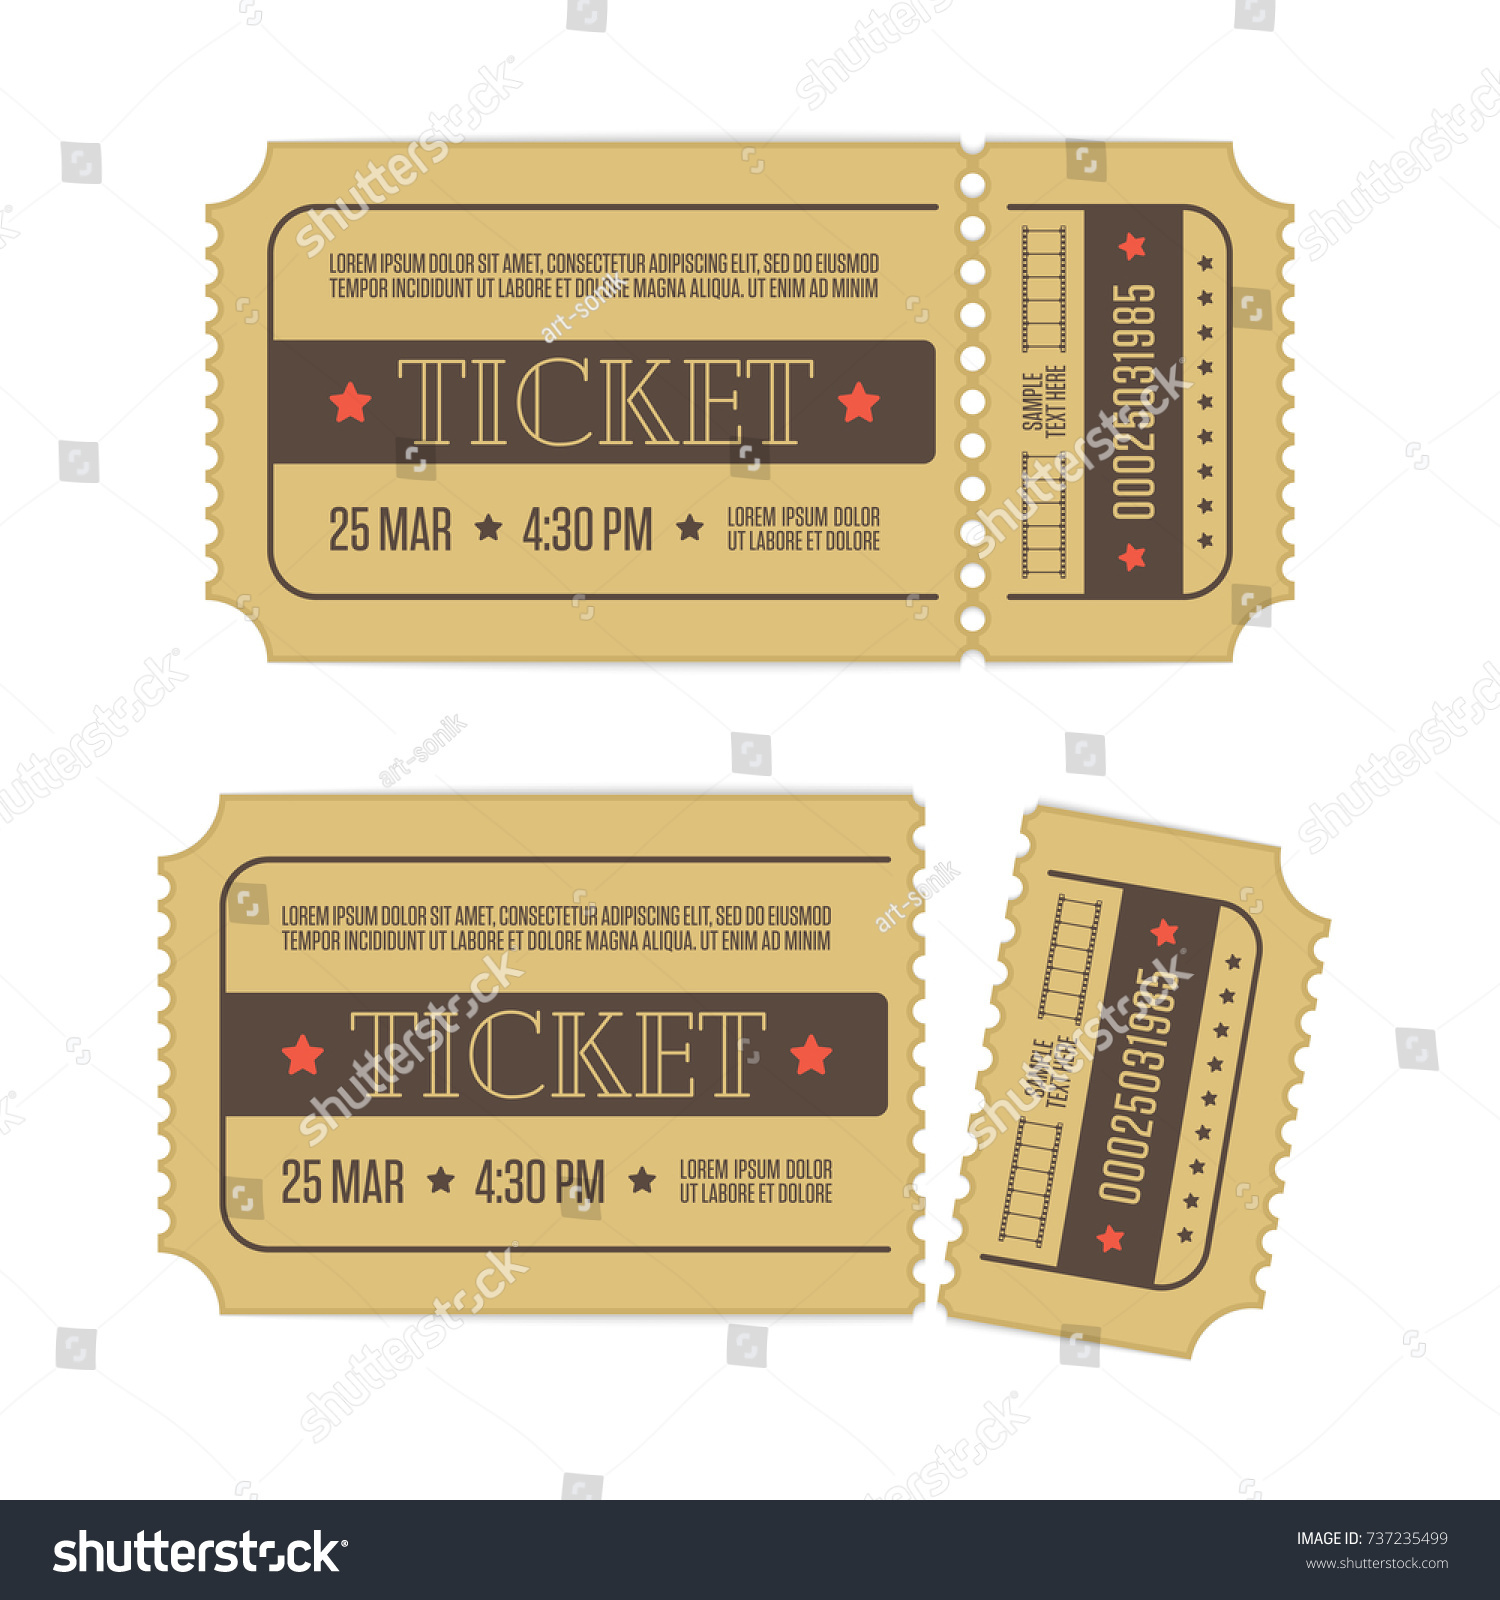 Retro Cinema Ticket Template Isolated On Stock Vector (Royalty Free ...